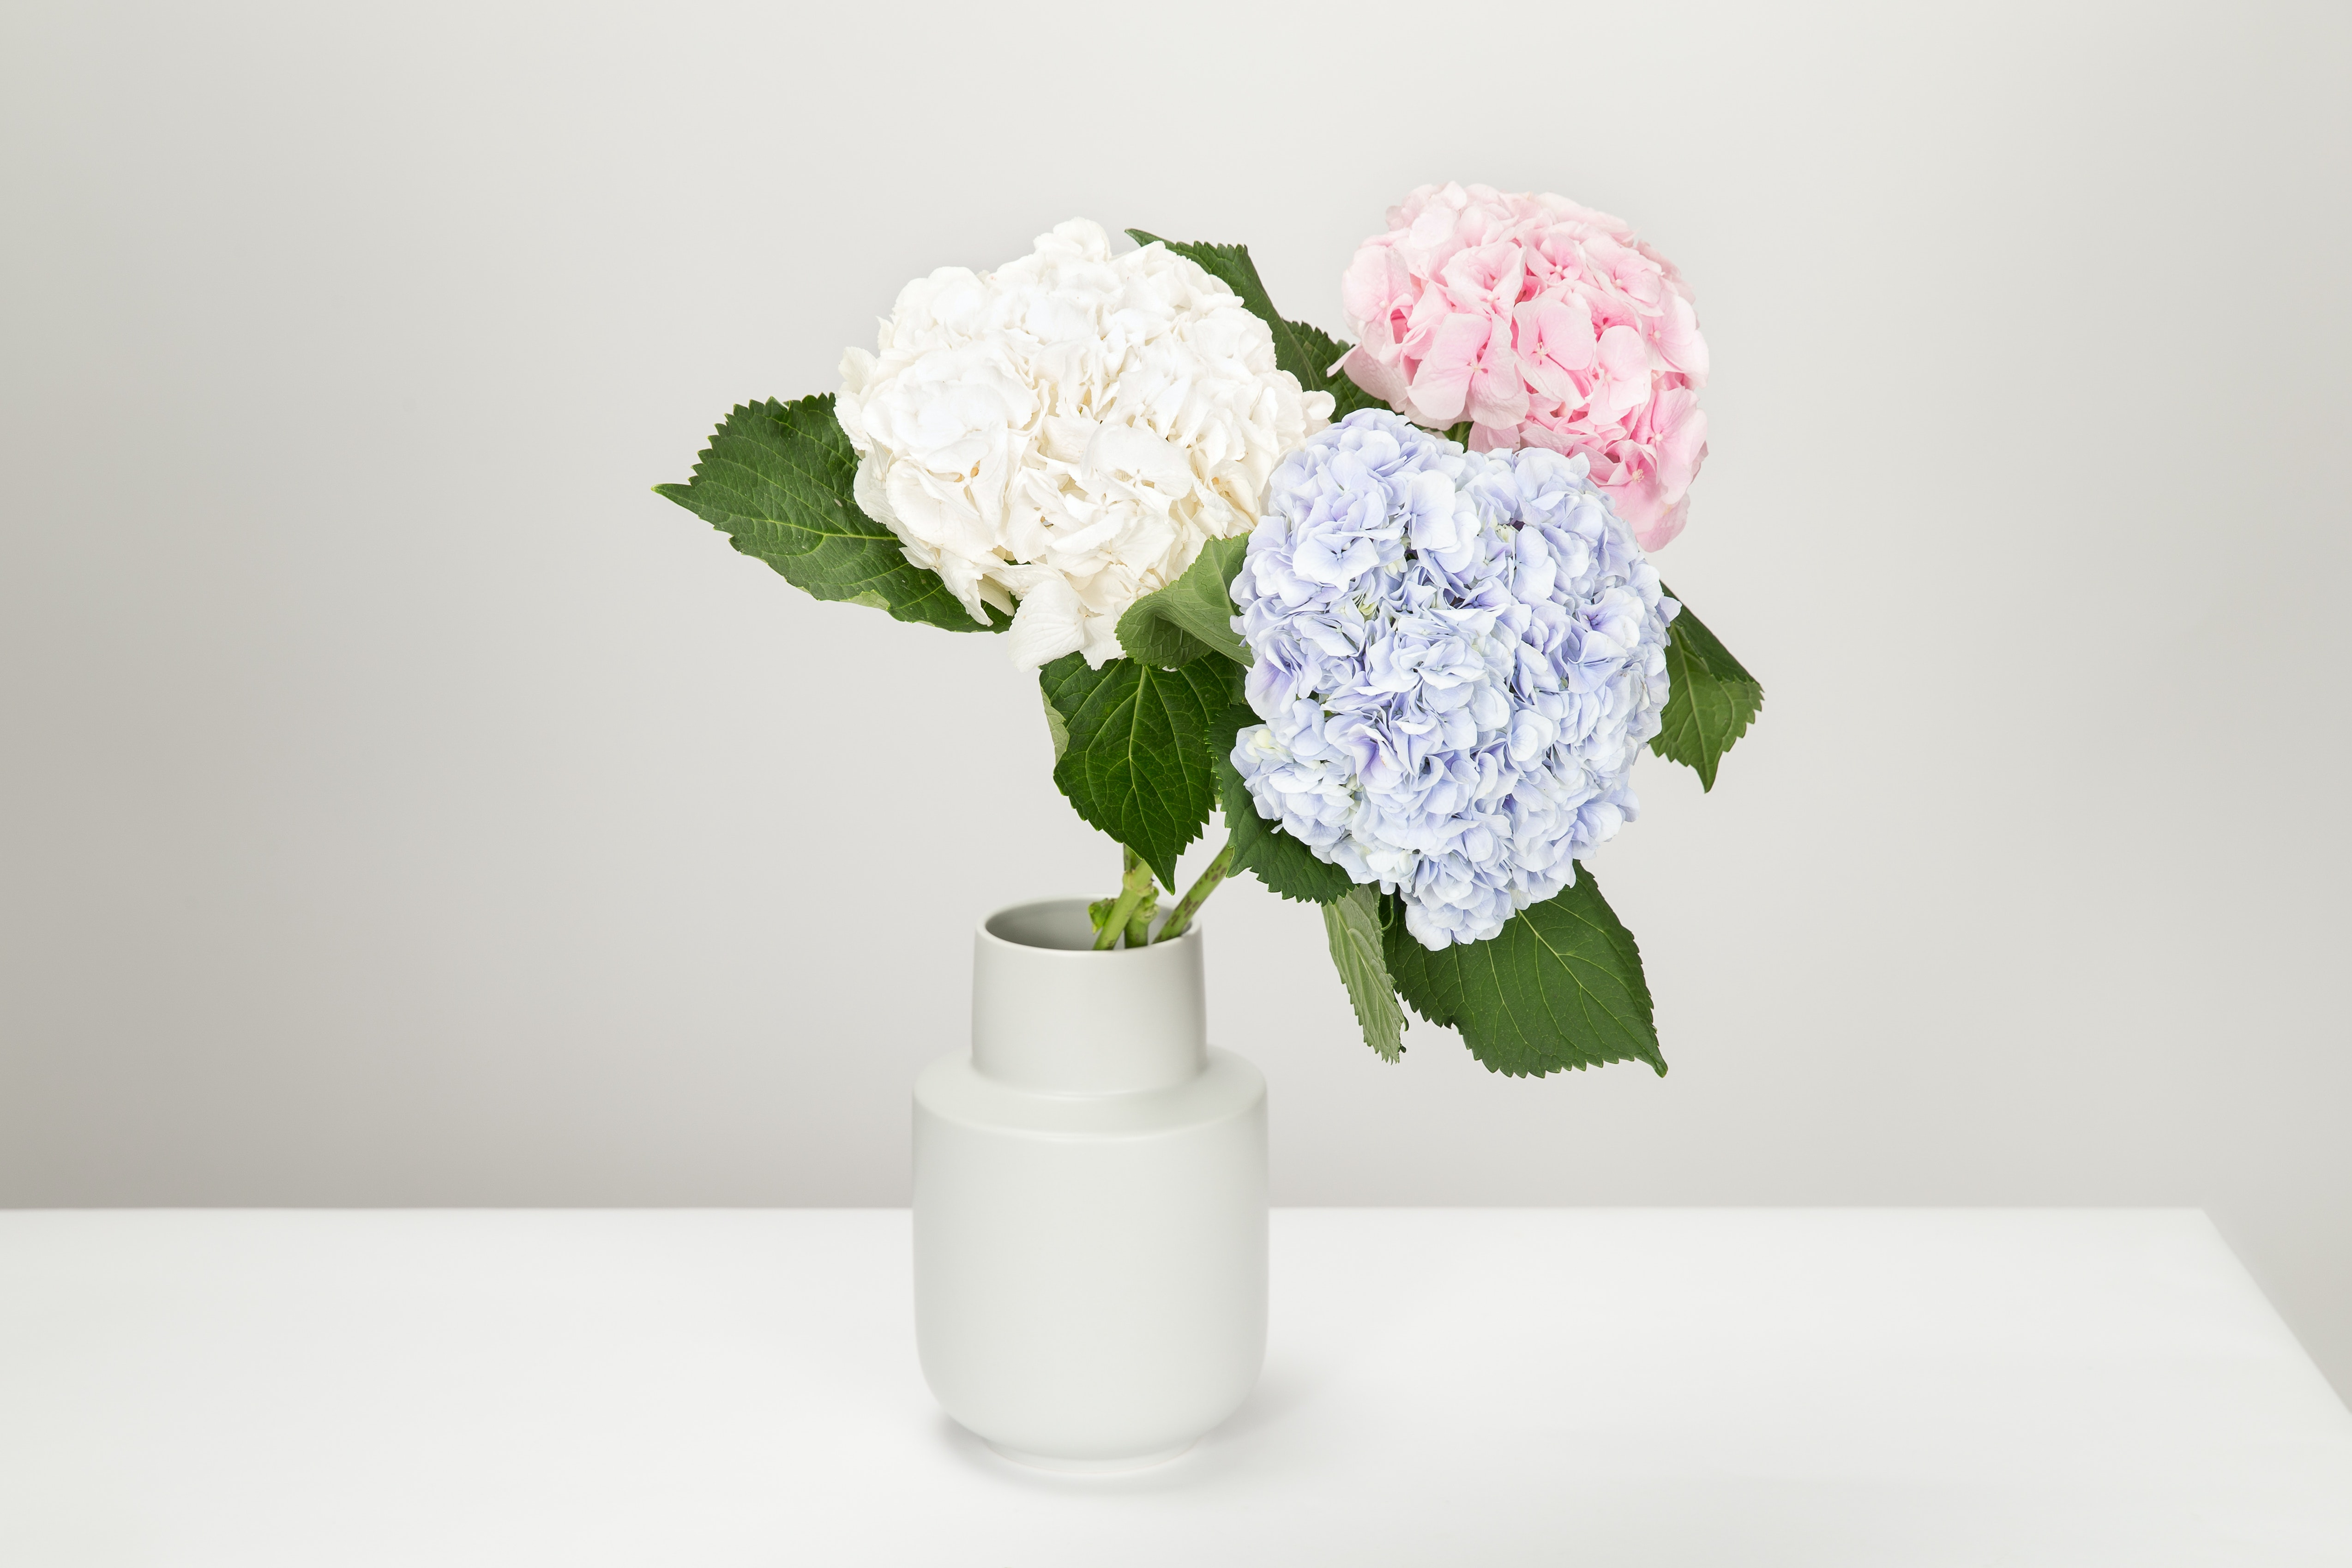 Pexels & Three White Blue and Pink Petaled Flowers in White Vase ...